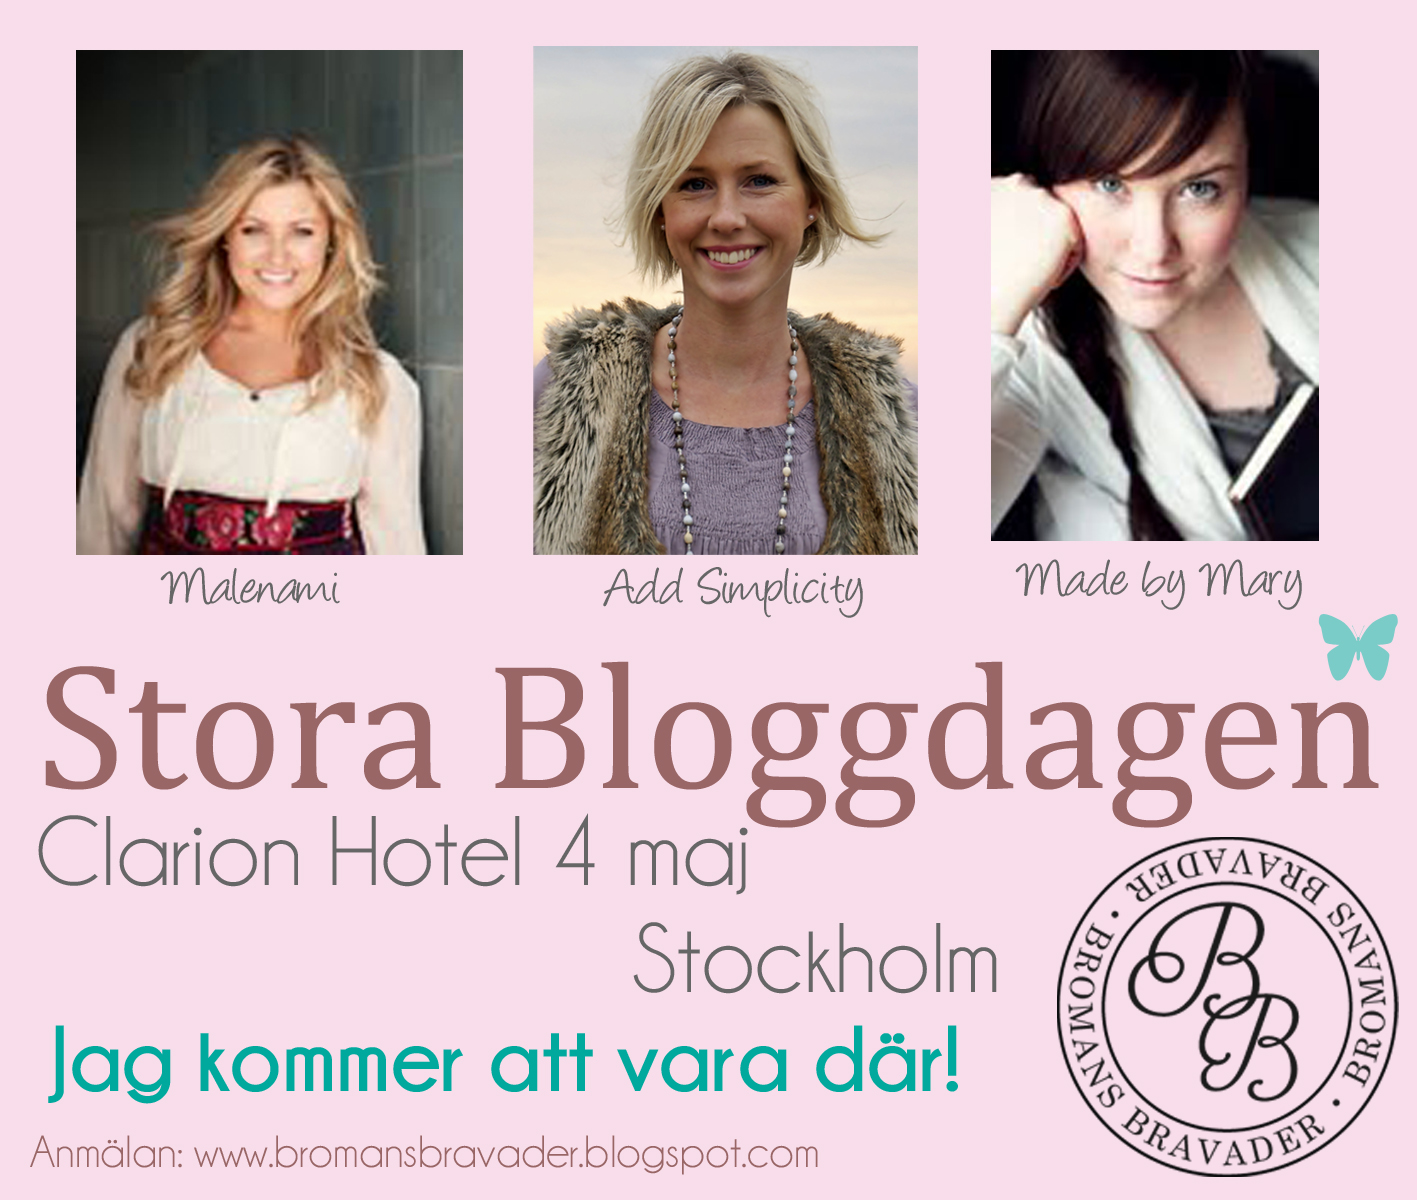 Stora Bloggdagen